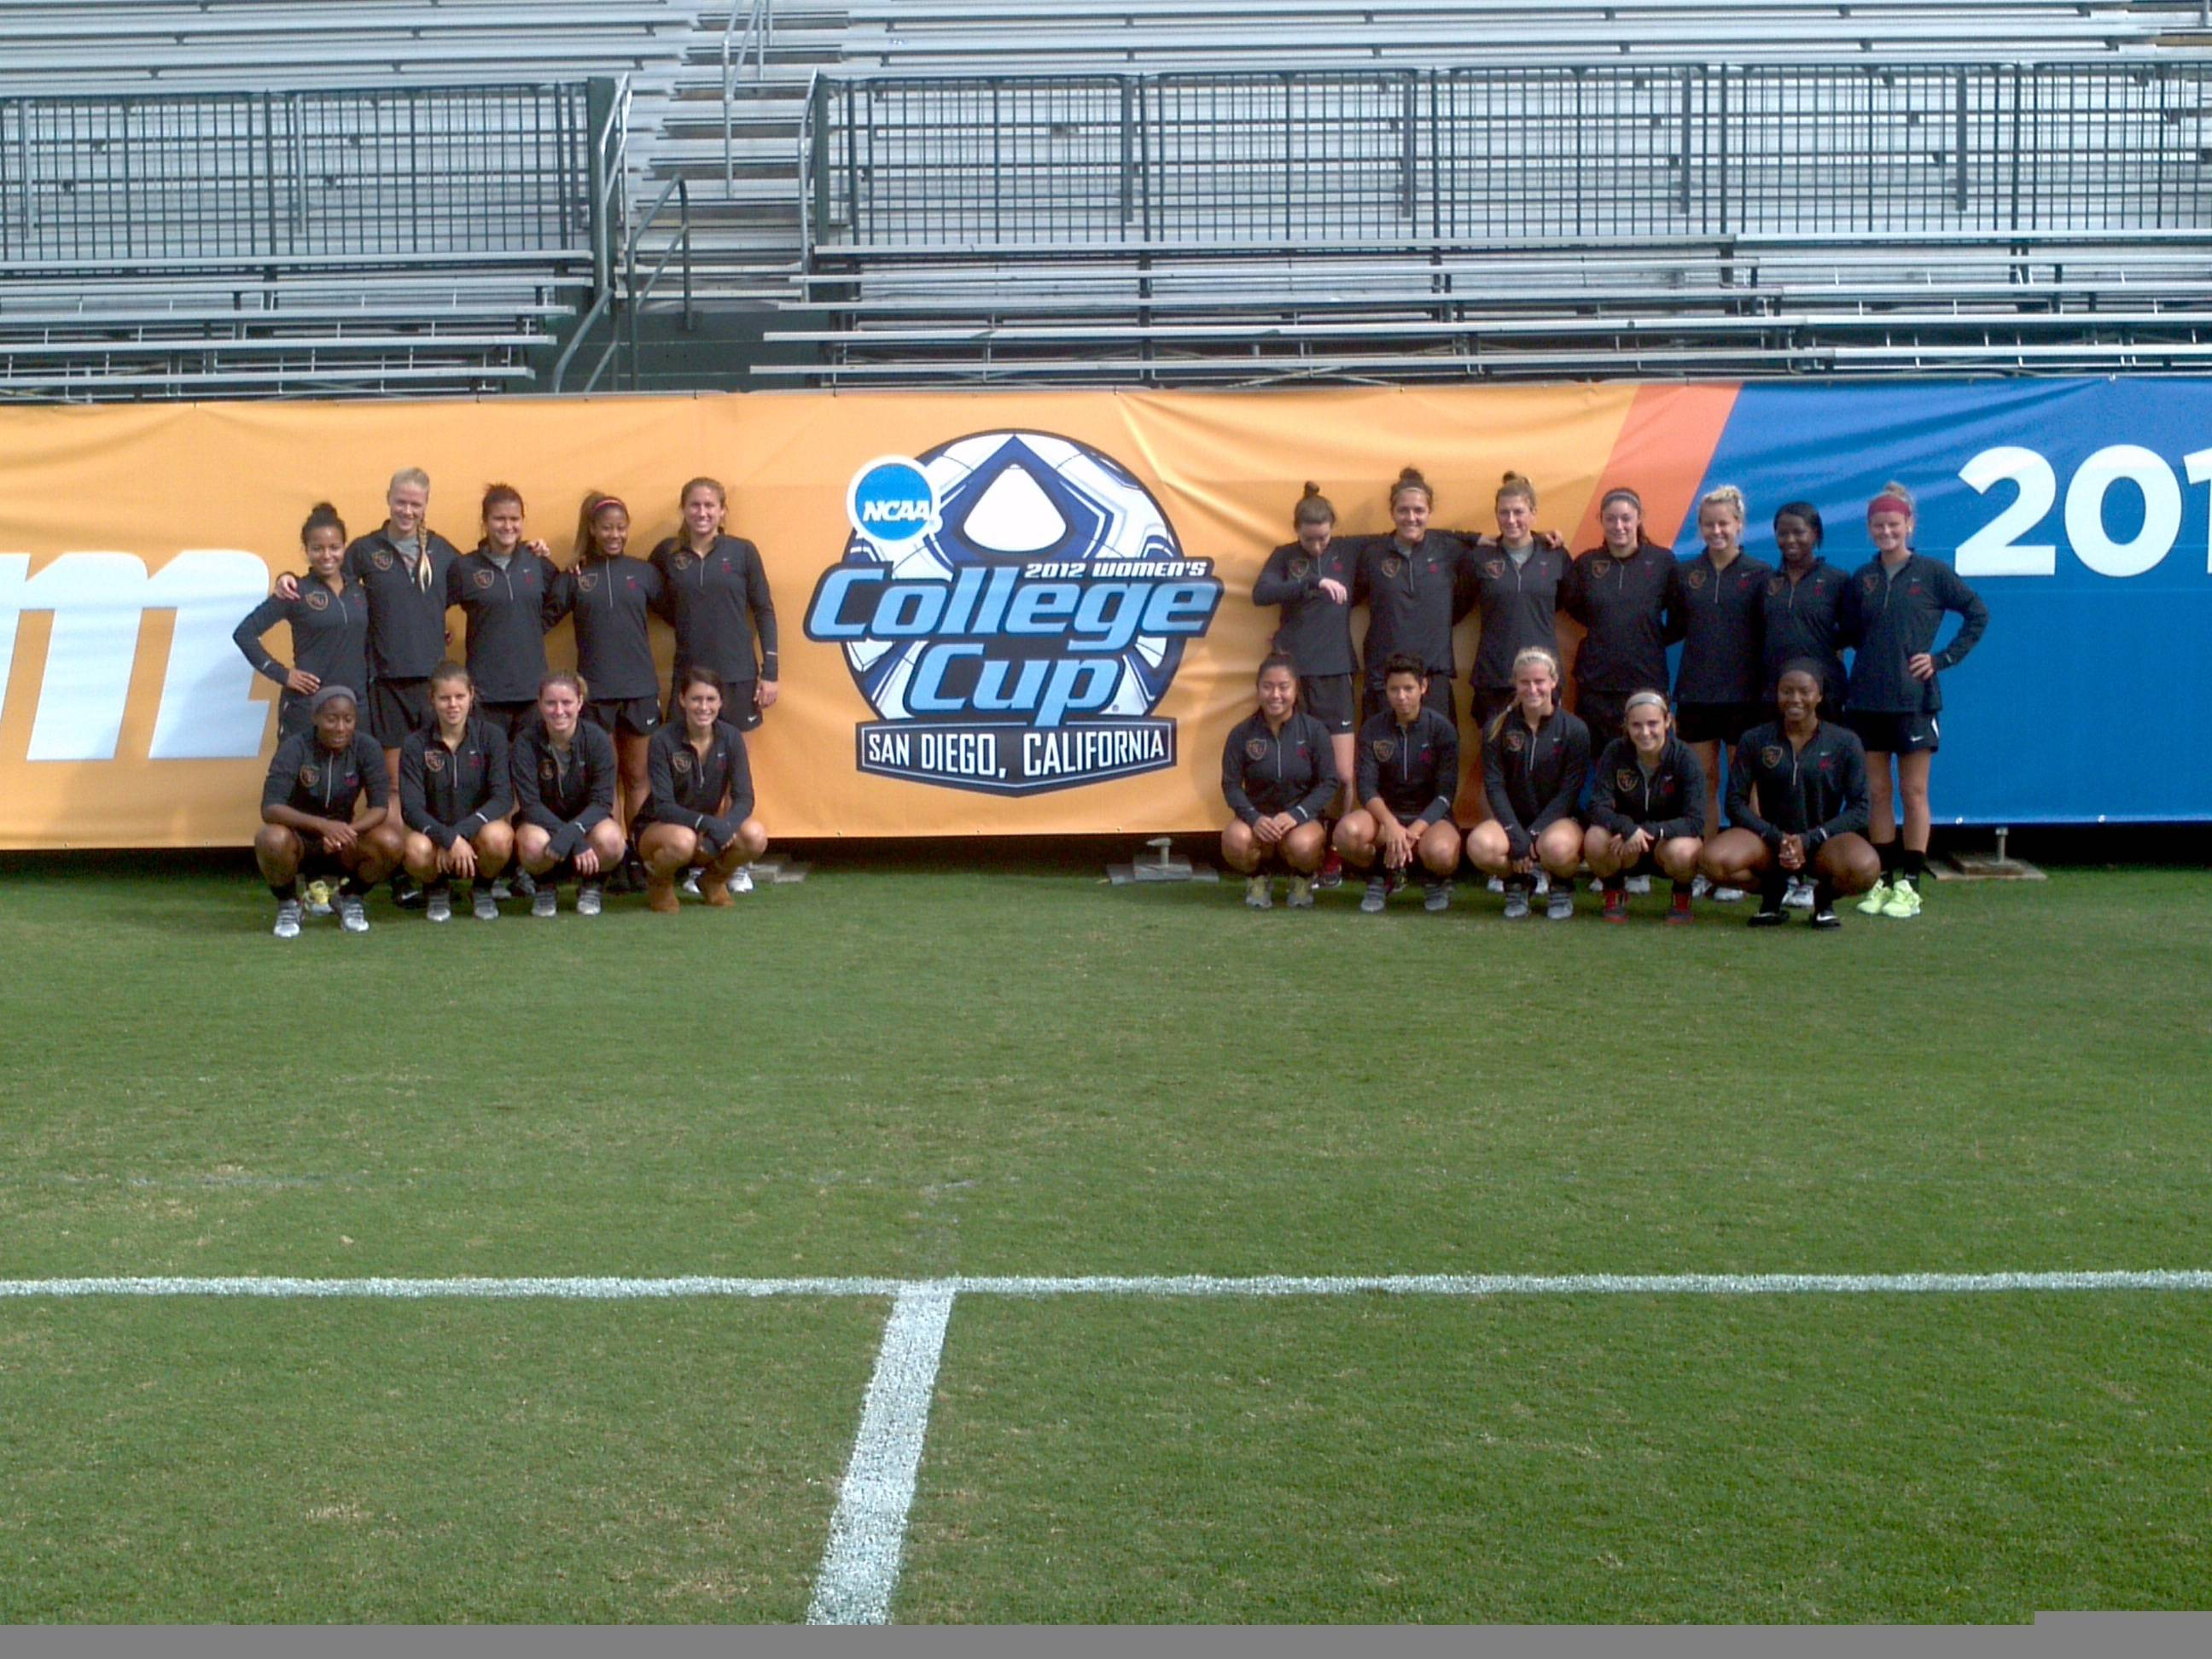 The 2012 Florida State Women's Soccer Team inside Torero Stadium